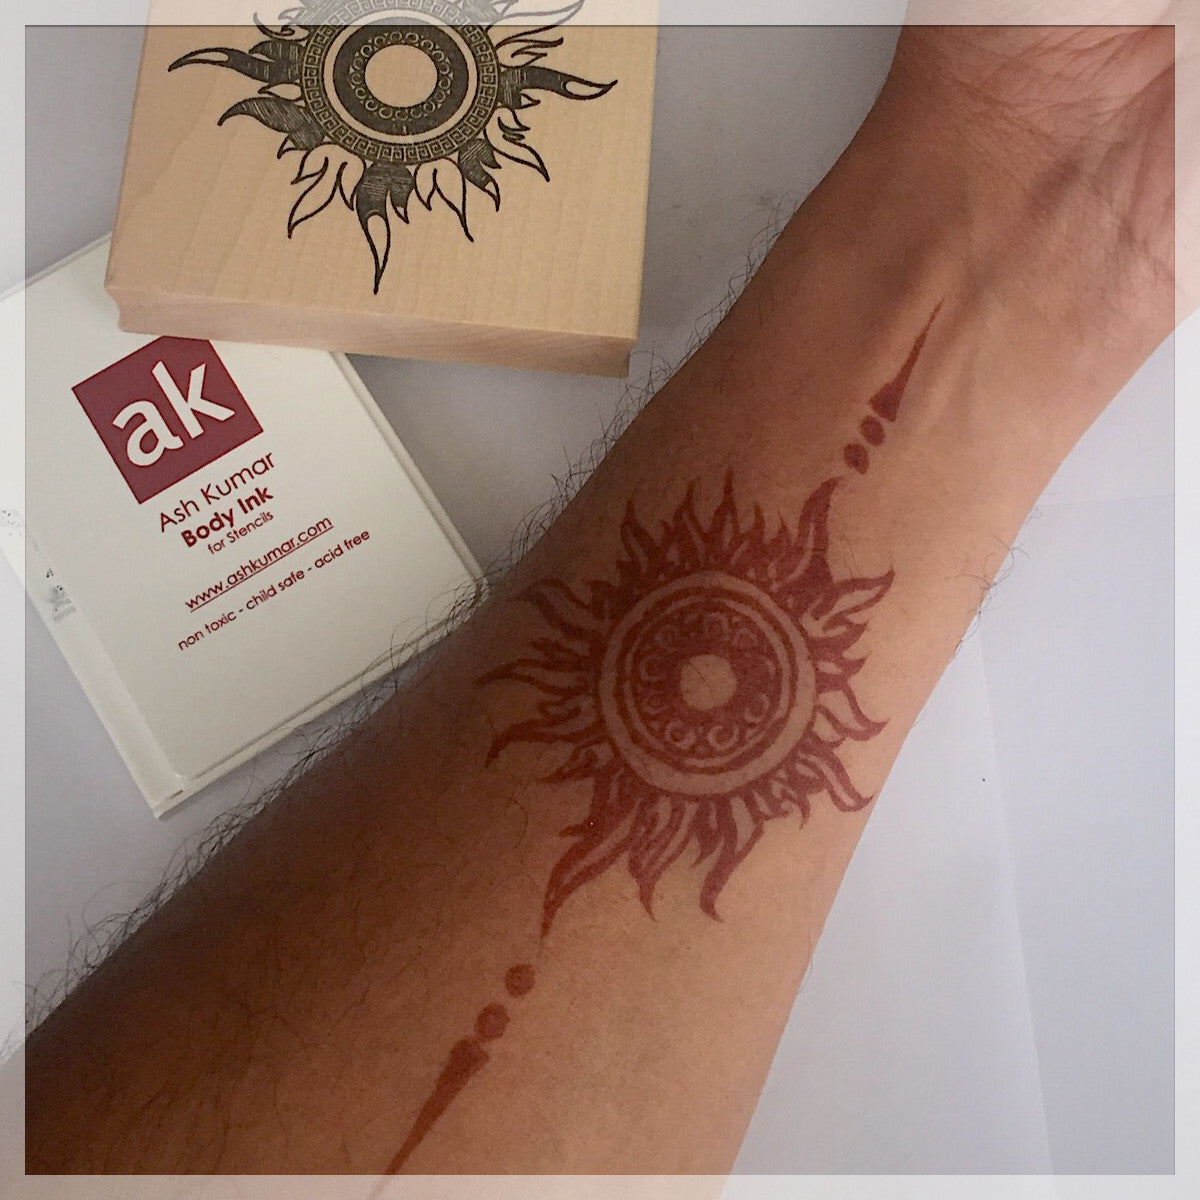 AK Design Stencil - Kit 10 - Ash Kumar Products UK